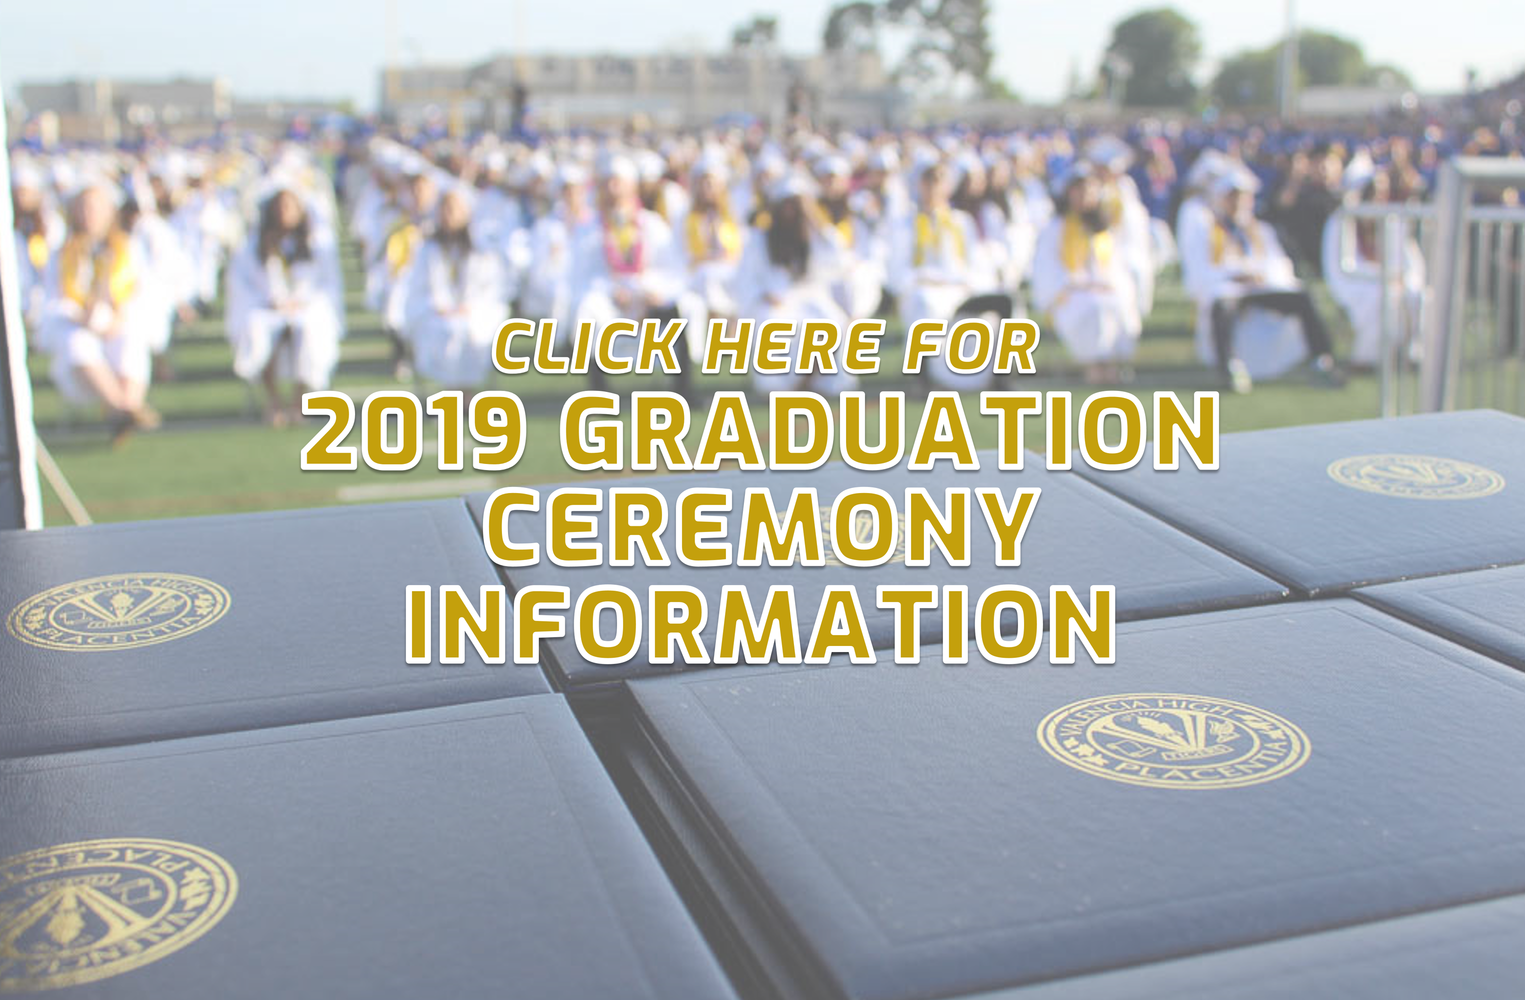 Click here for 2019 graduation ceremony information.